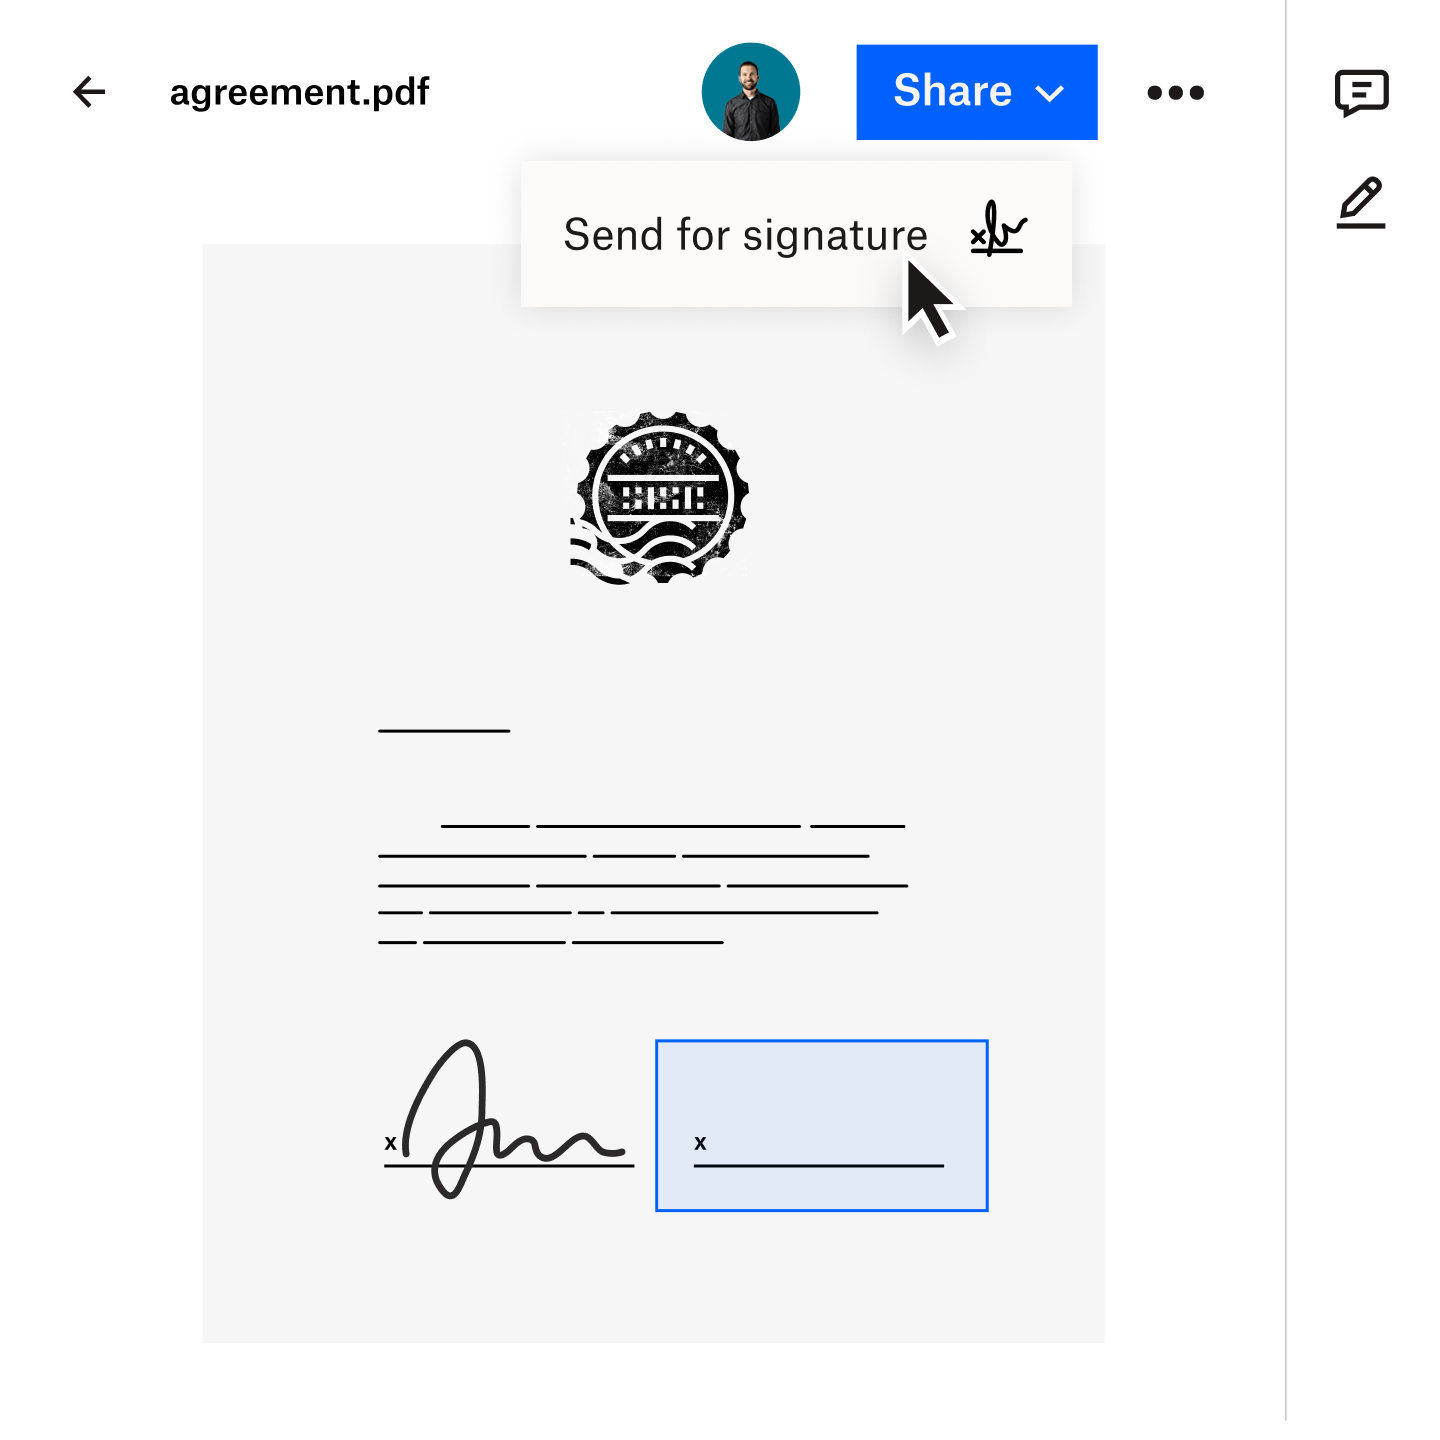 An agreement saved in Dropbox is easily sent for a legally binding eSignature